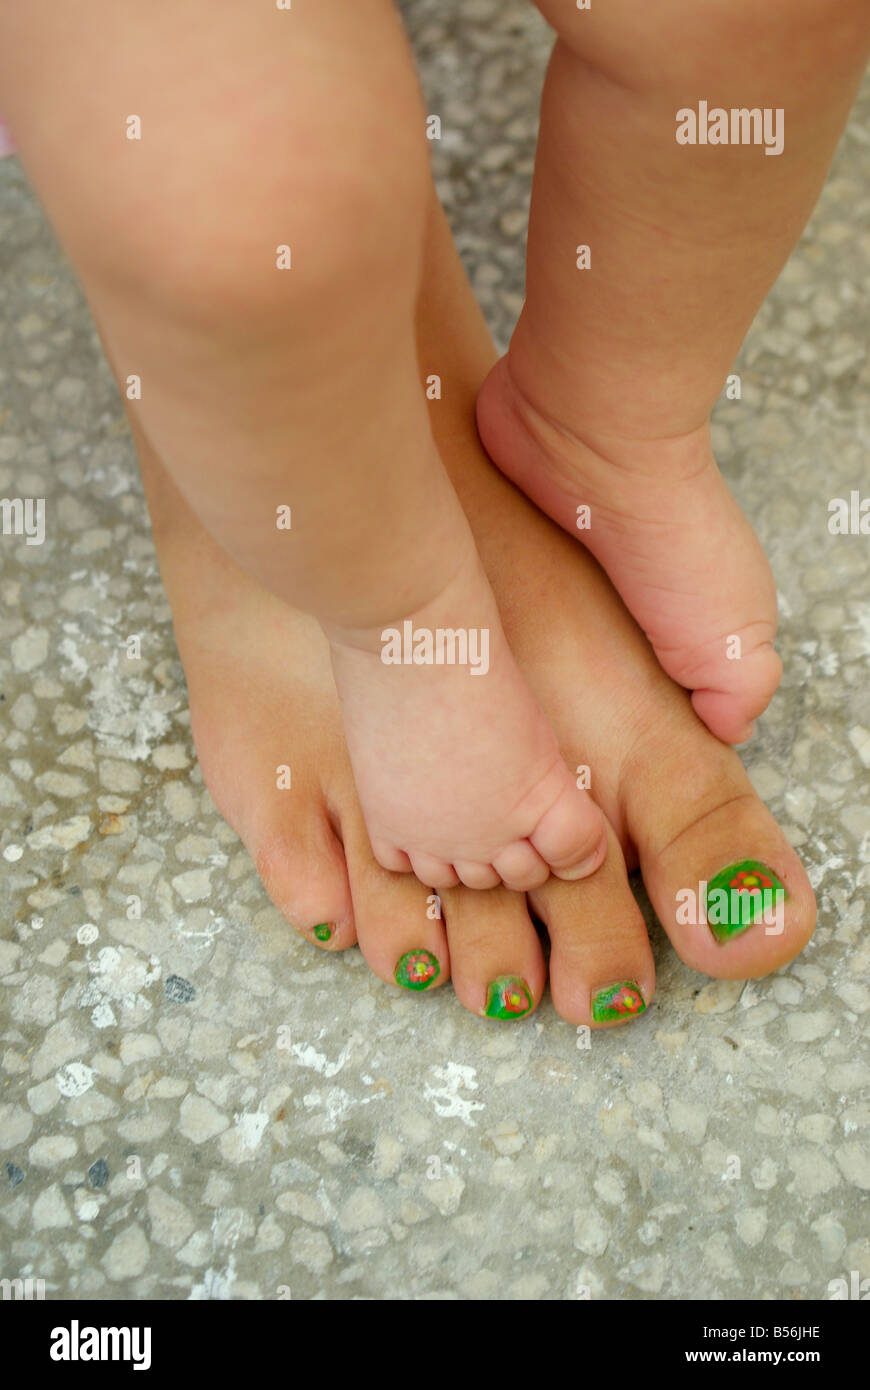 A child peduncle to leg of Mama - Stock Image